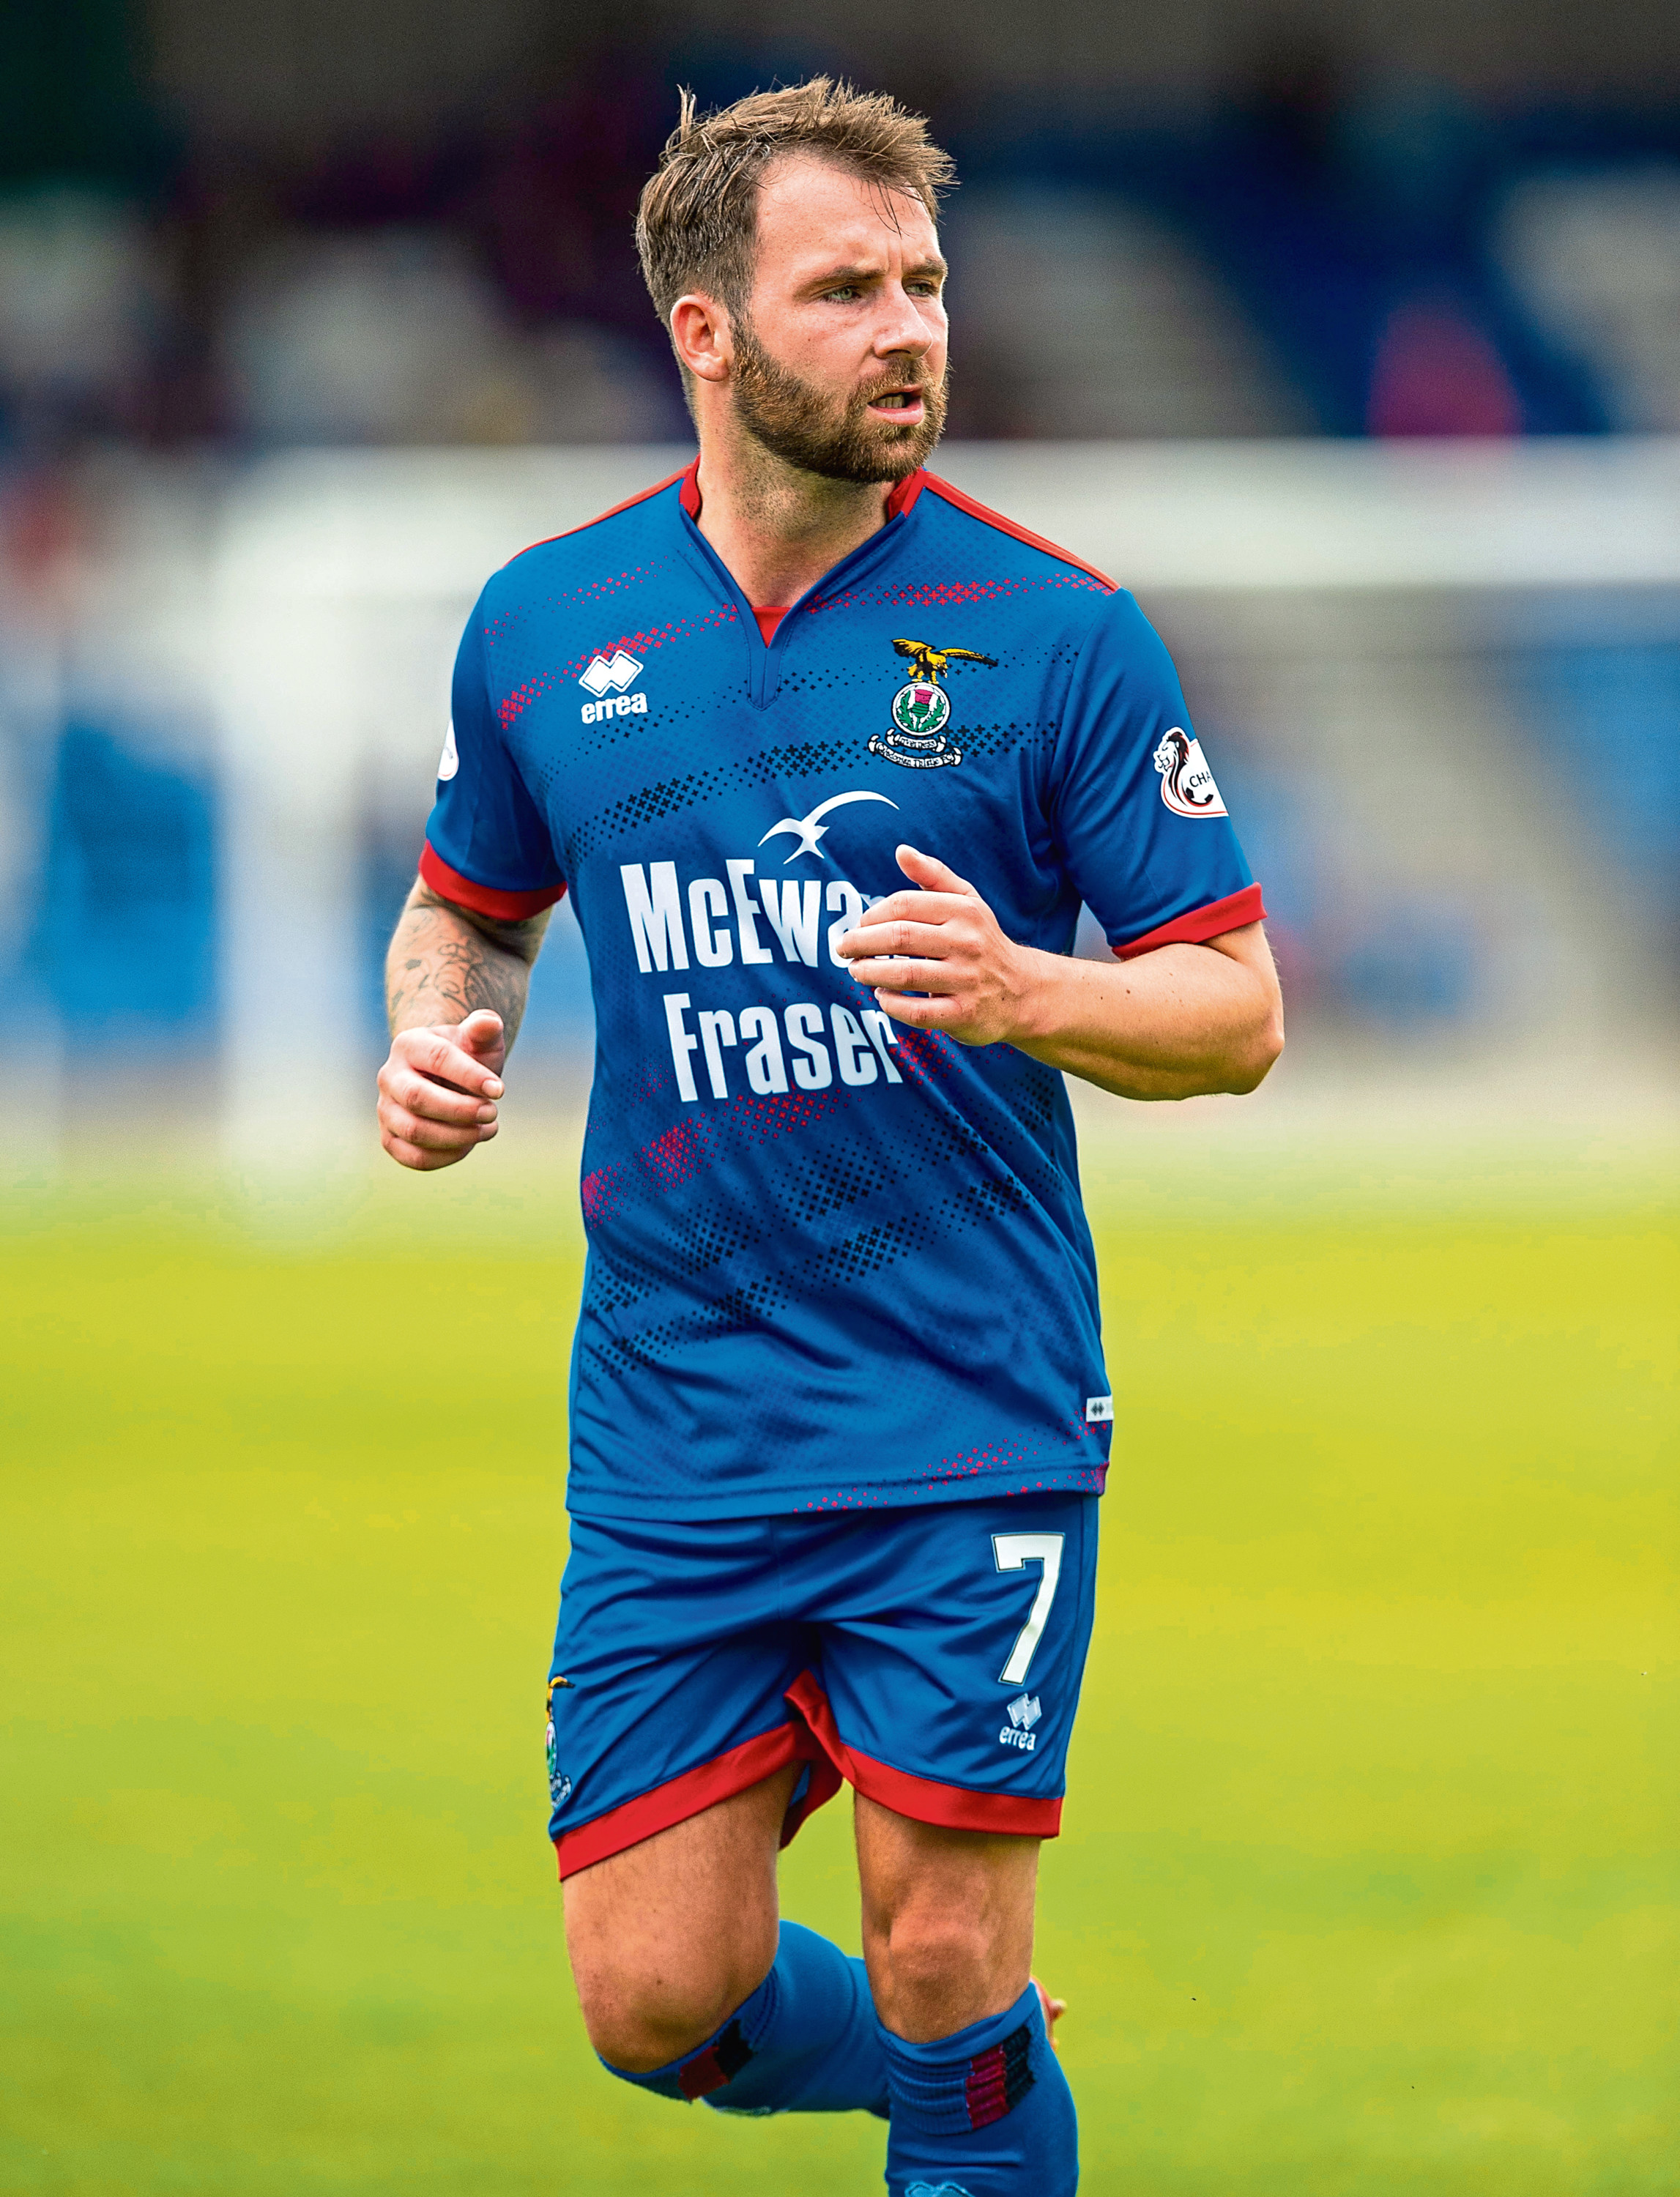 20/07/19 BETFRED CUP GROUP D INVERNESS CT v RAITH ROVERS (4-1) TULLOCH CALEDONIAN STADIUM - INVERNESS James Keatings in action for Inverness